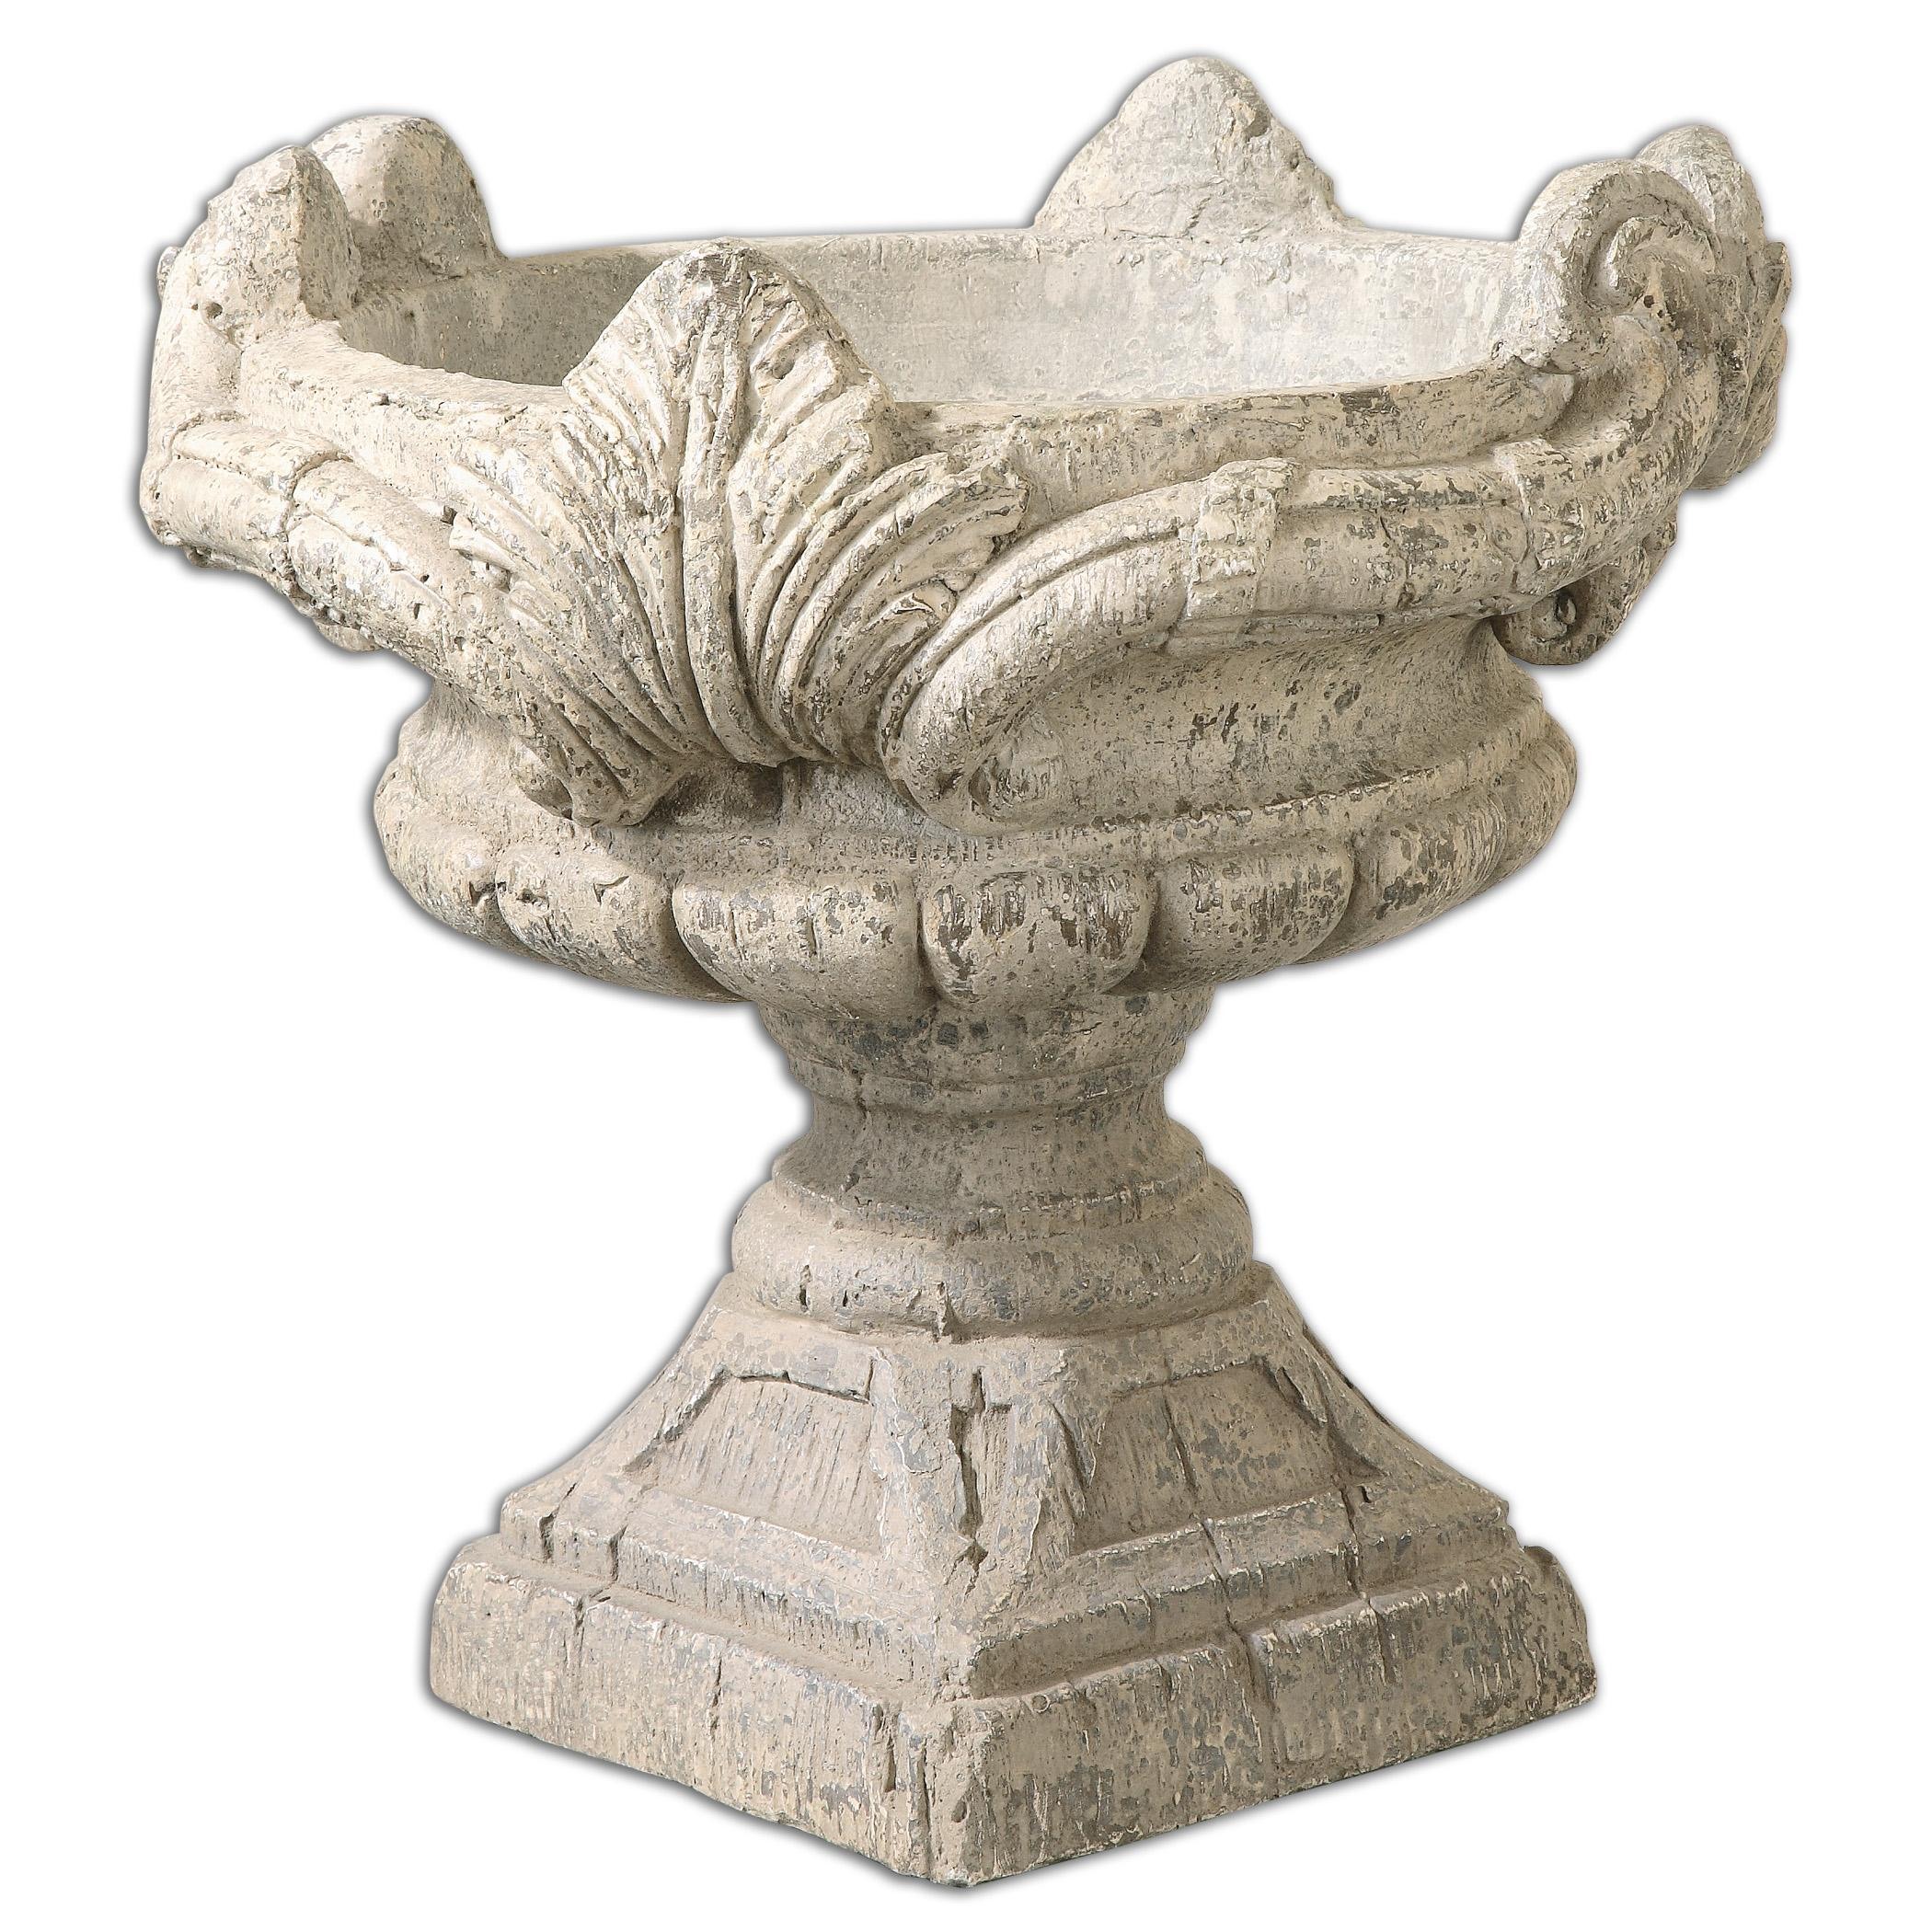 Uttermost Accessories Elske Stone Planter - Item Number: 19902